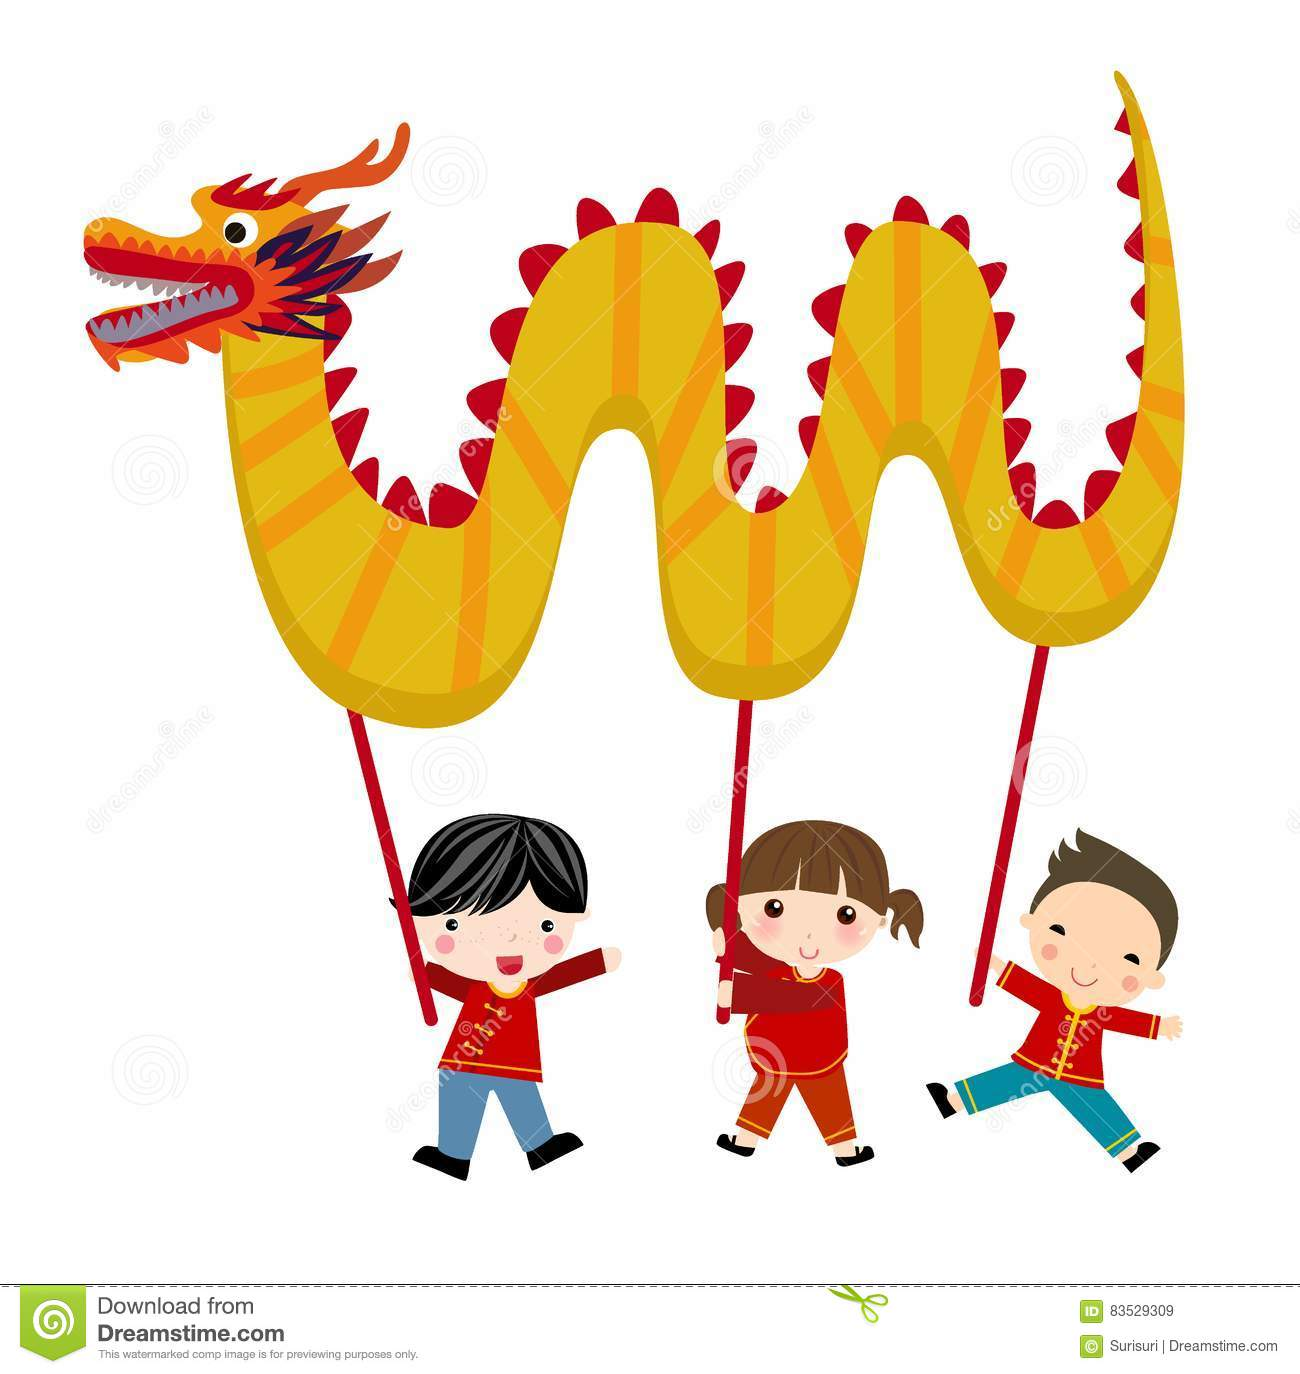 Chinese New Year Festival/Dragon Dance Stock Vector - Illustration of luck,  smiling: 83529309